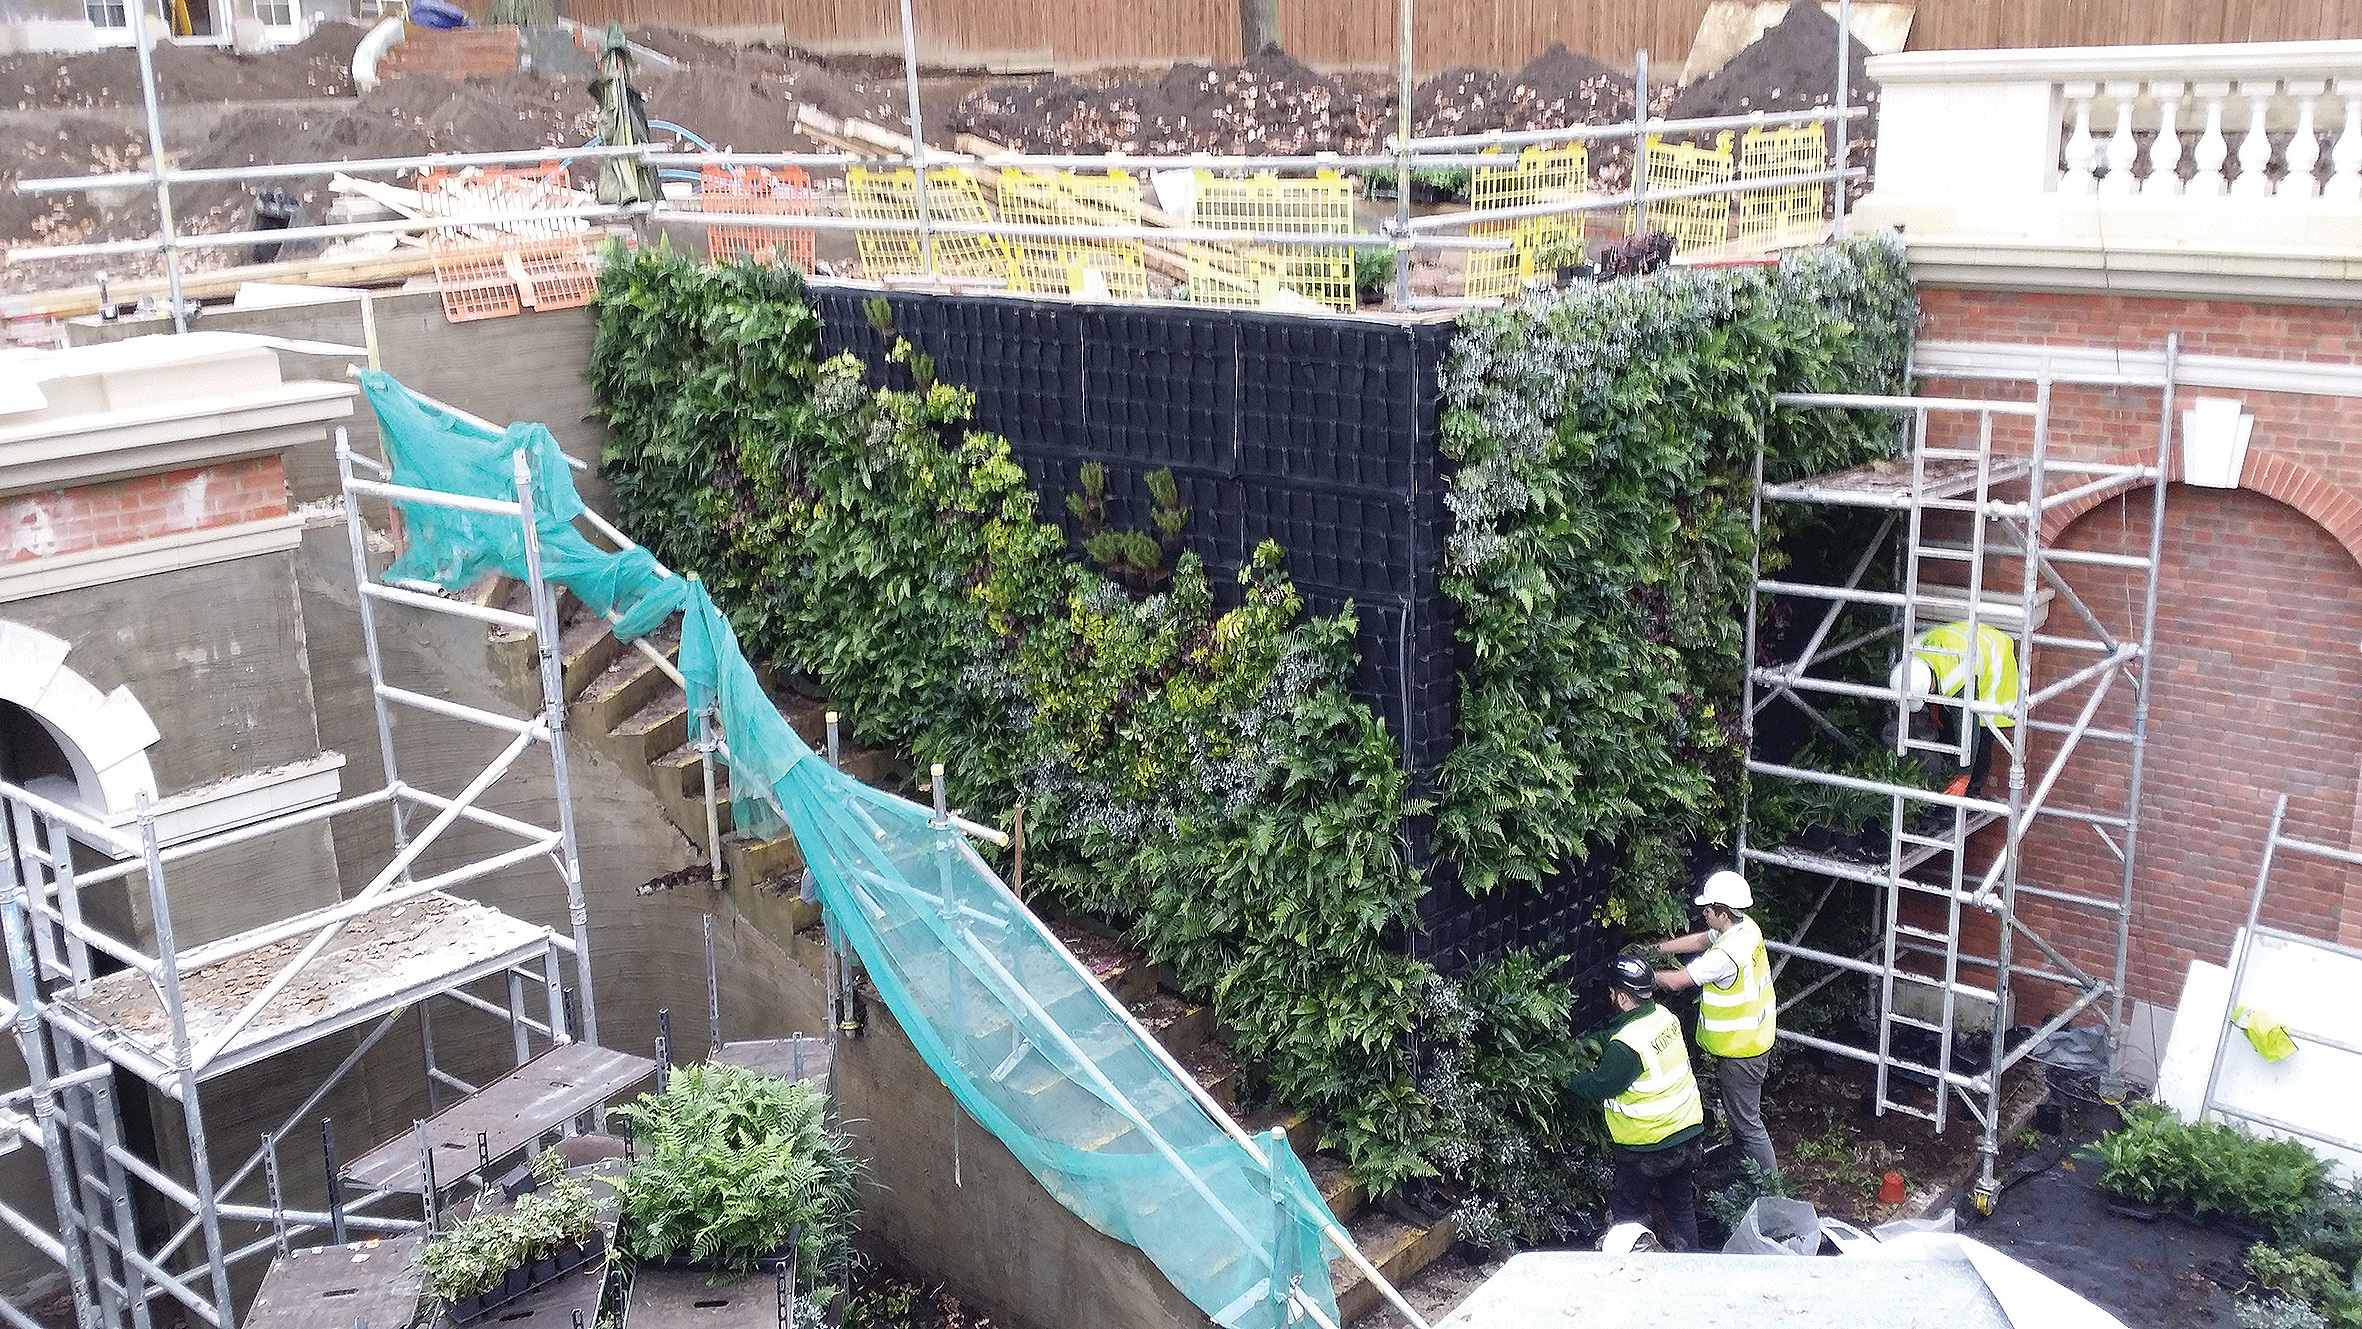 Living Wall constructed with FYTOTEXTILE for plant health